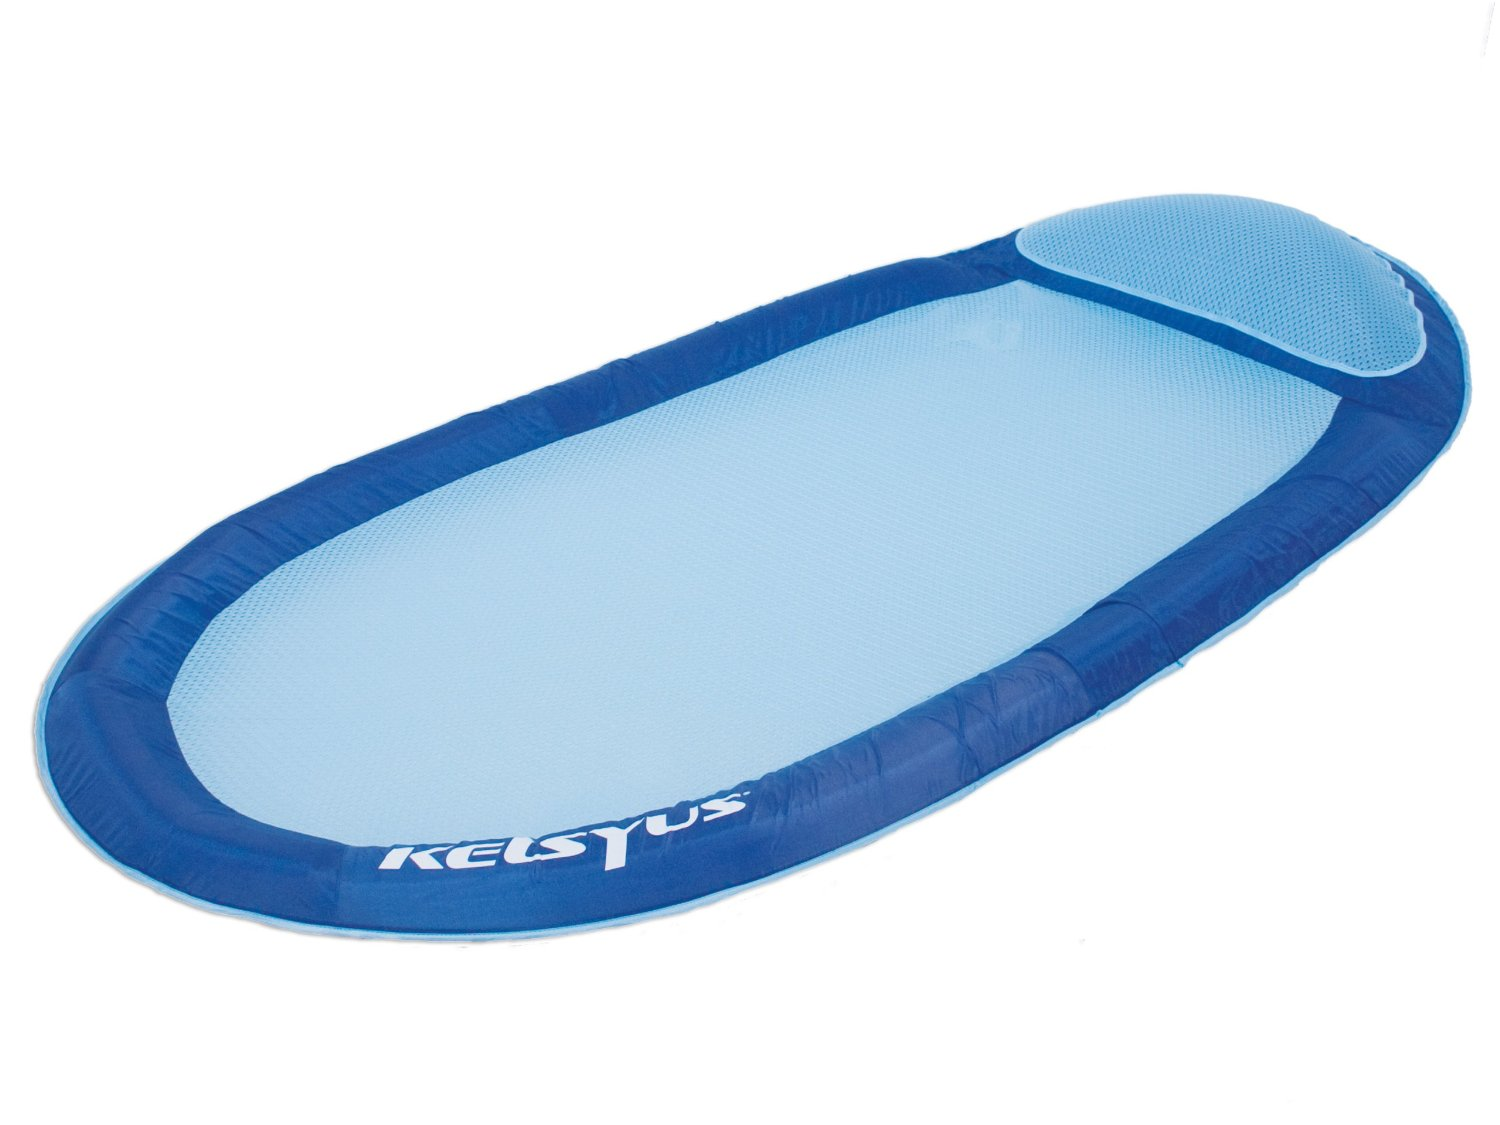 Kelsyus Floating Water Hammock